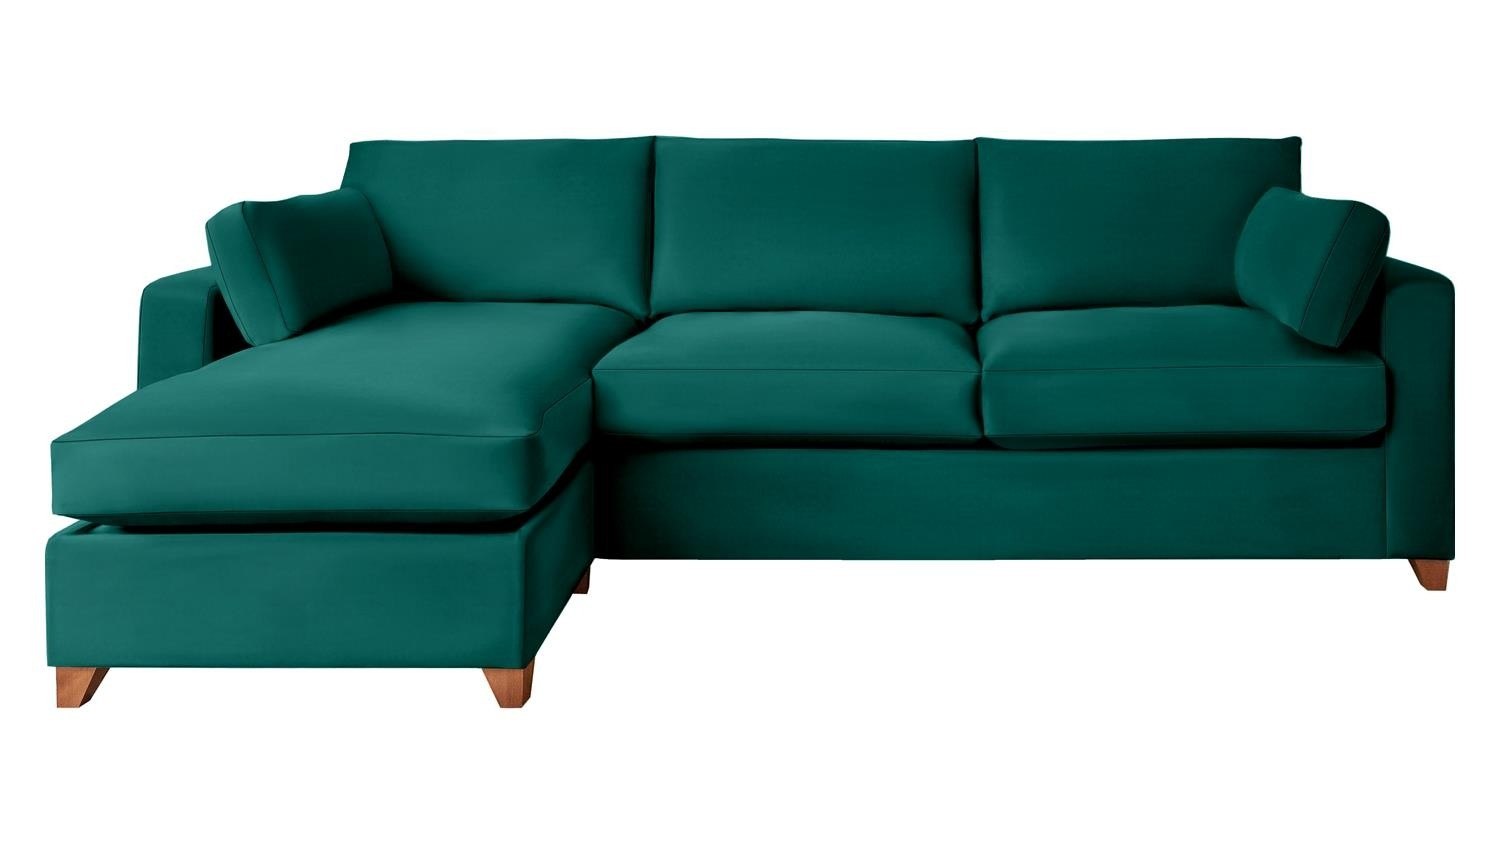 The Ashwell 4 Seater Sofa Bed